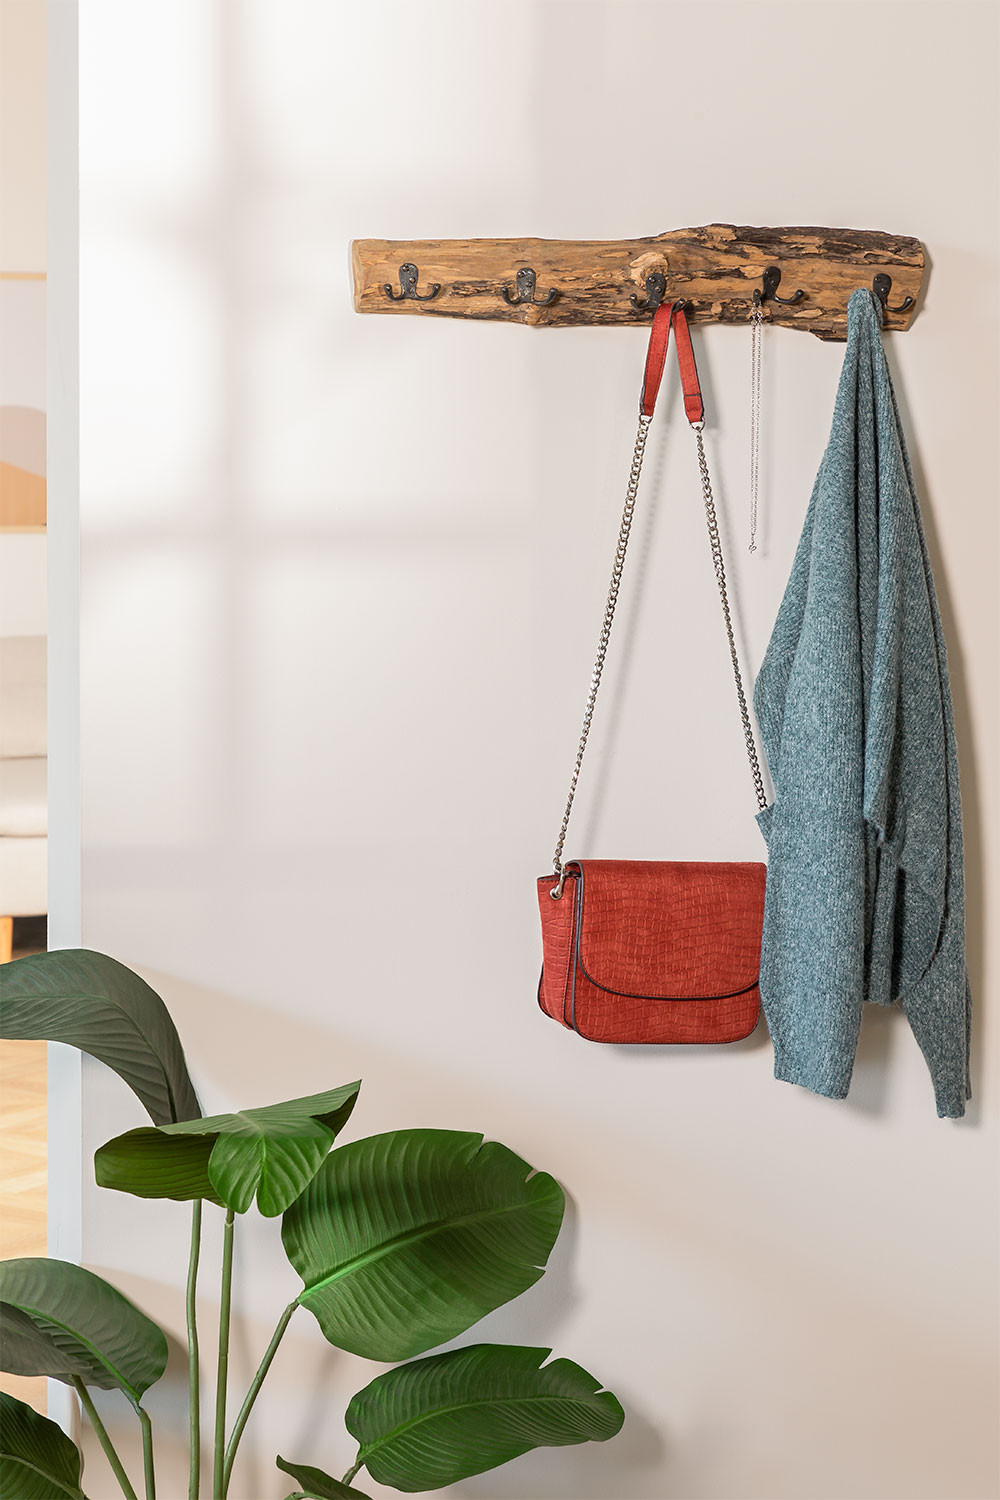 Recycled Wood Wall Coat Rack Trunc , gallery image 979342